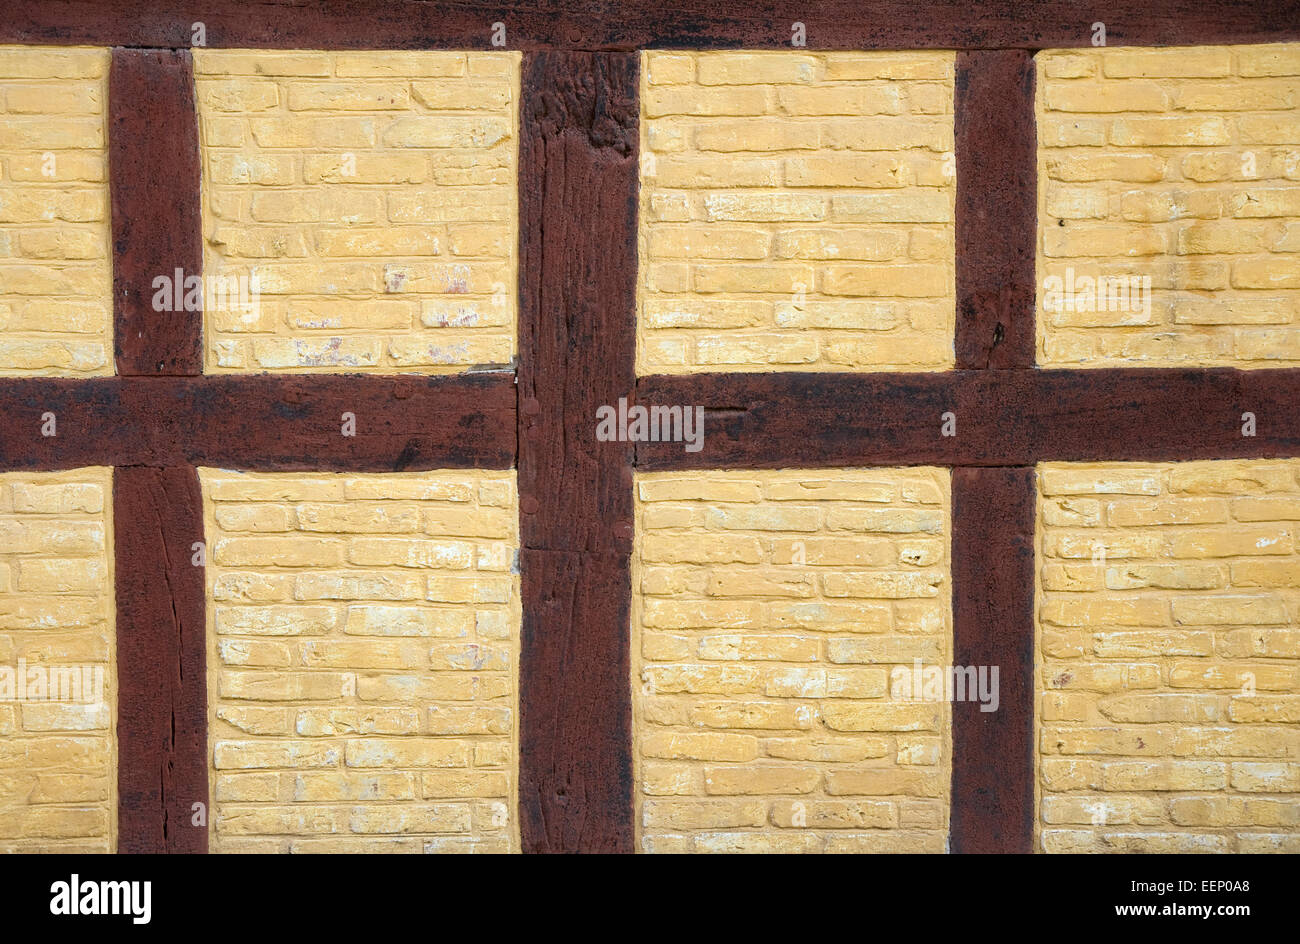 Part of half-timbered wall. Can be used as background - Stock Image